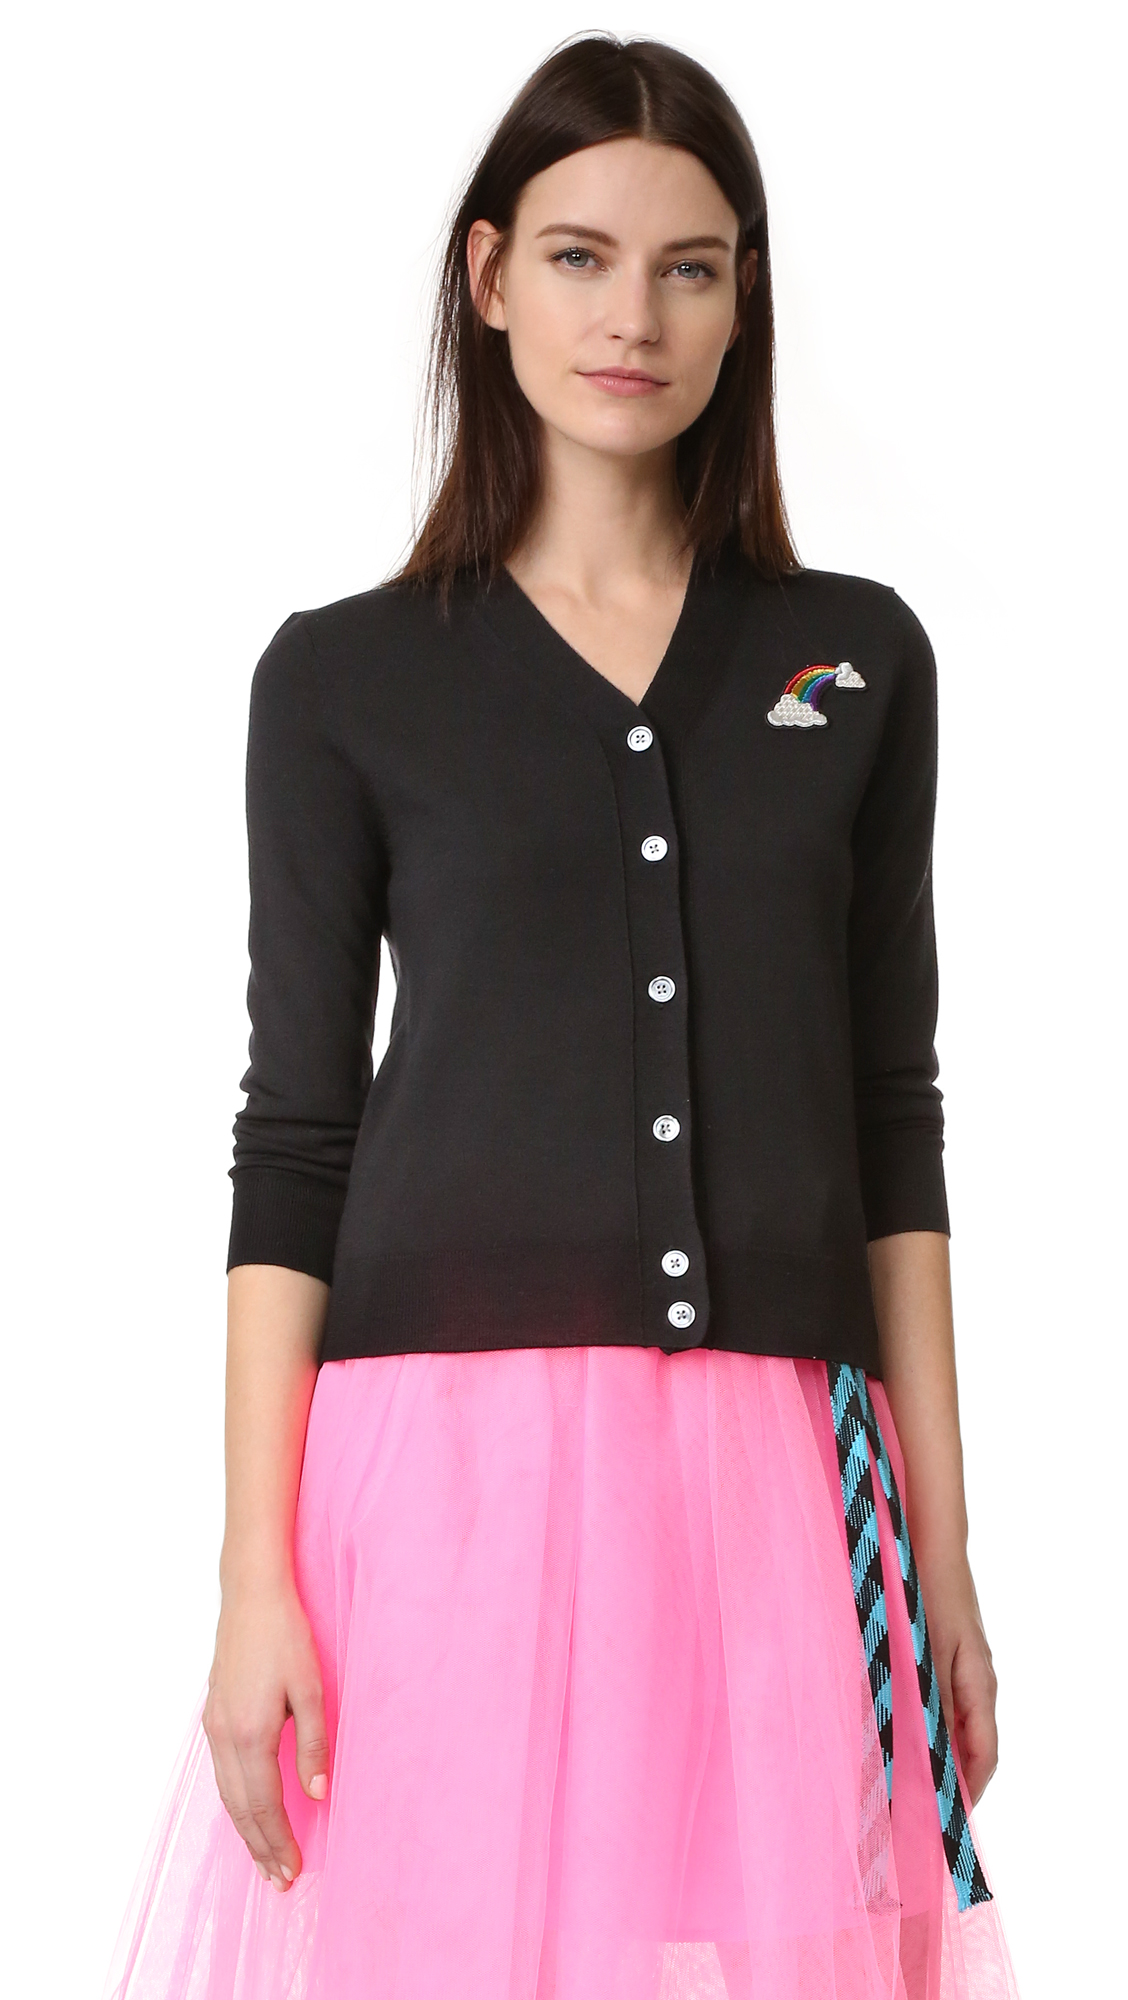 marc jacobs female marc jacobs long sleeve cardigan black